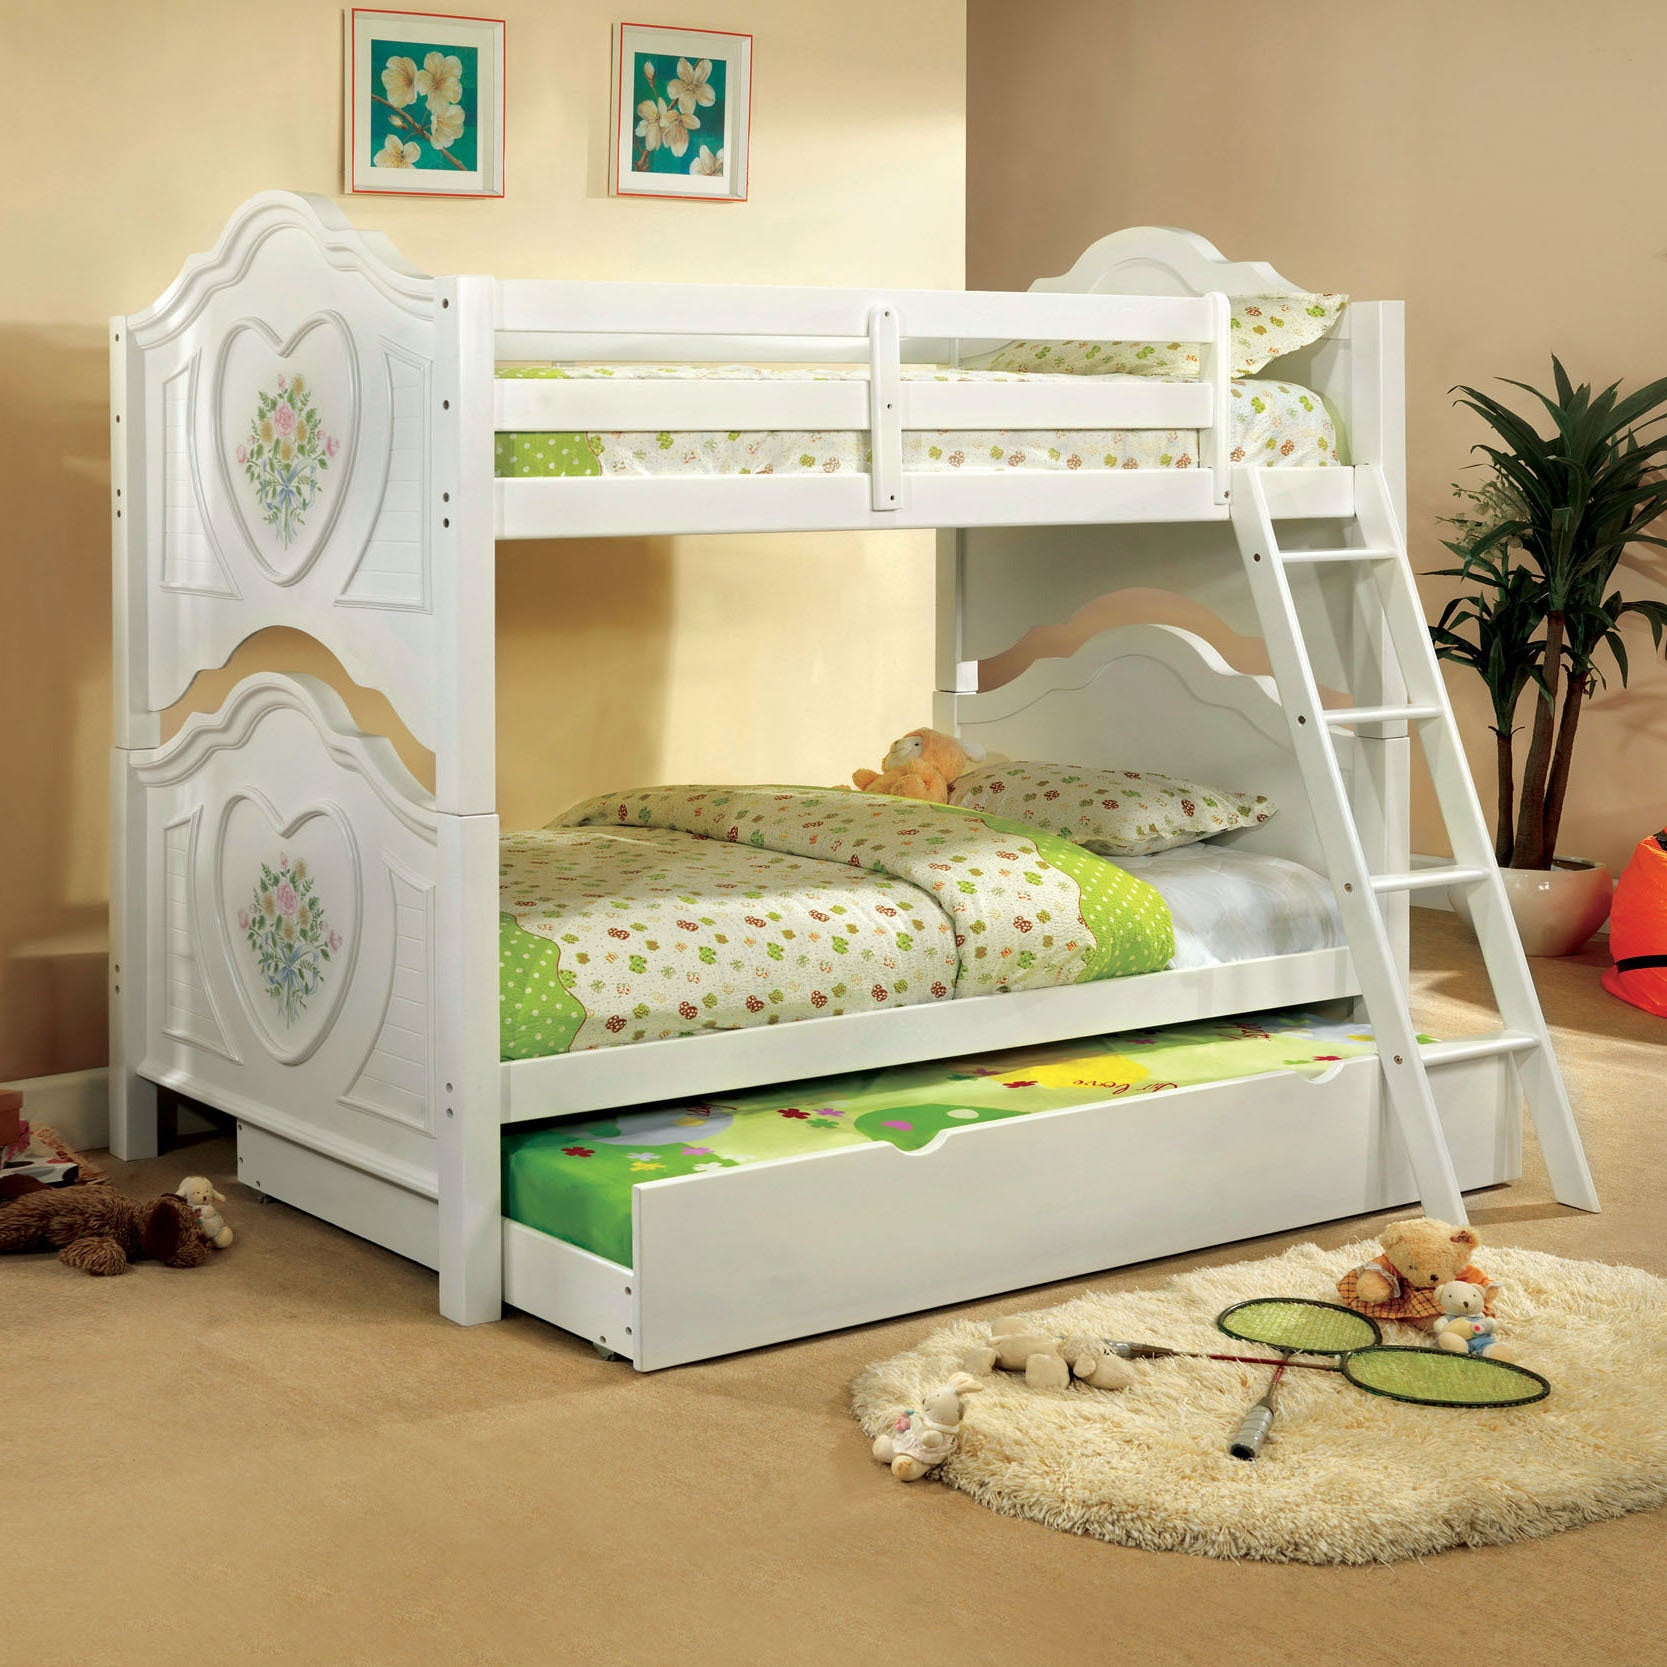 Furniture of America Rosalina Floral White Bunk Bed (Twin...